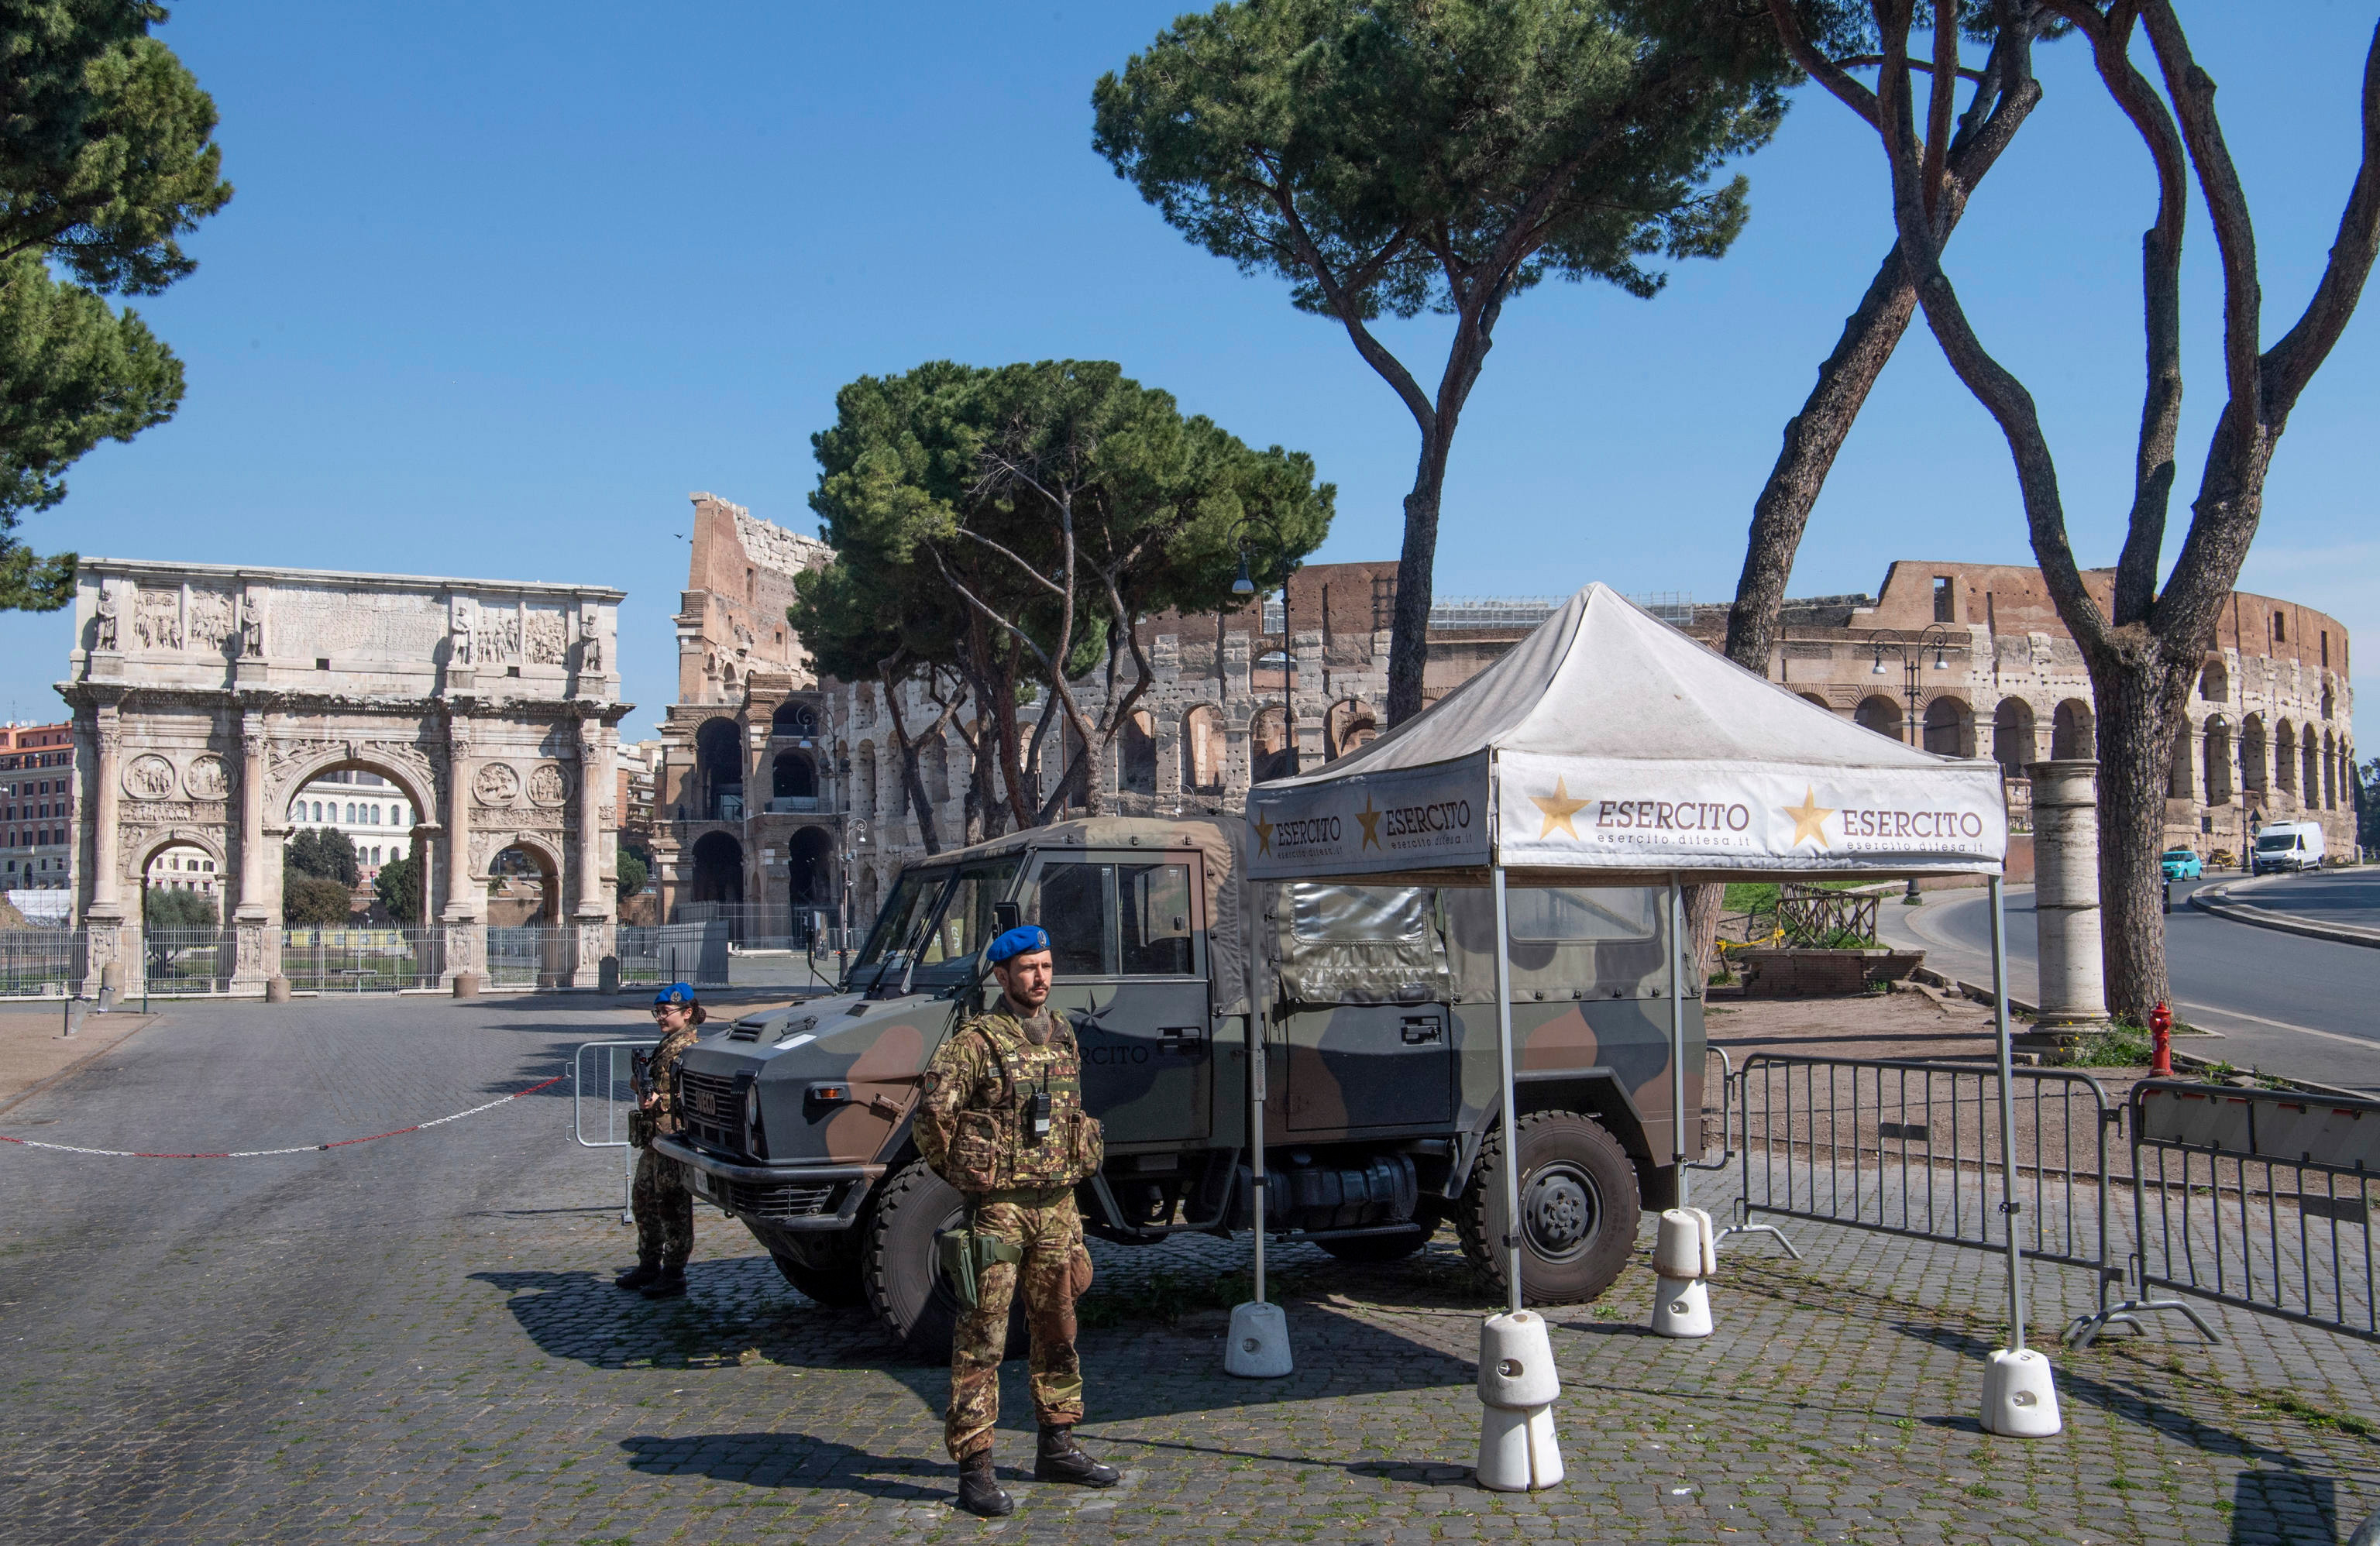 The Italian army is now patrolling the streets to enforce a lockdown